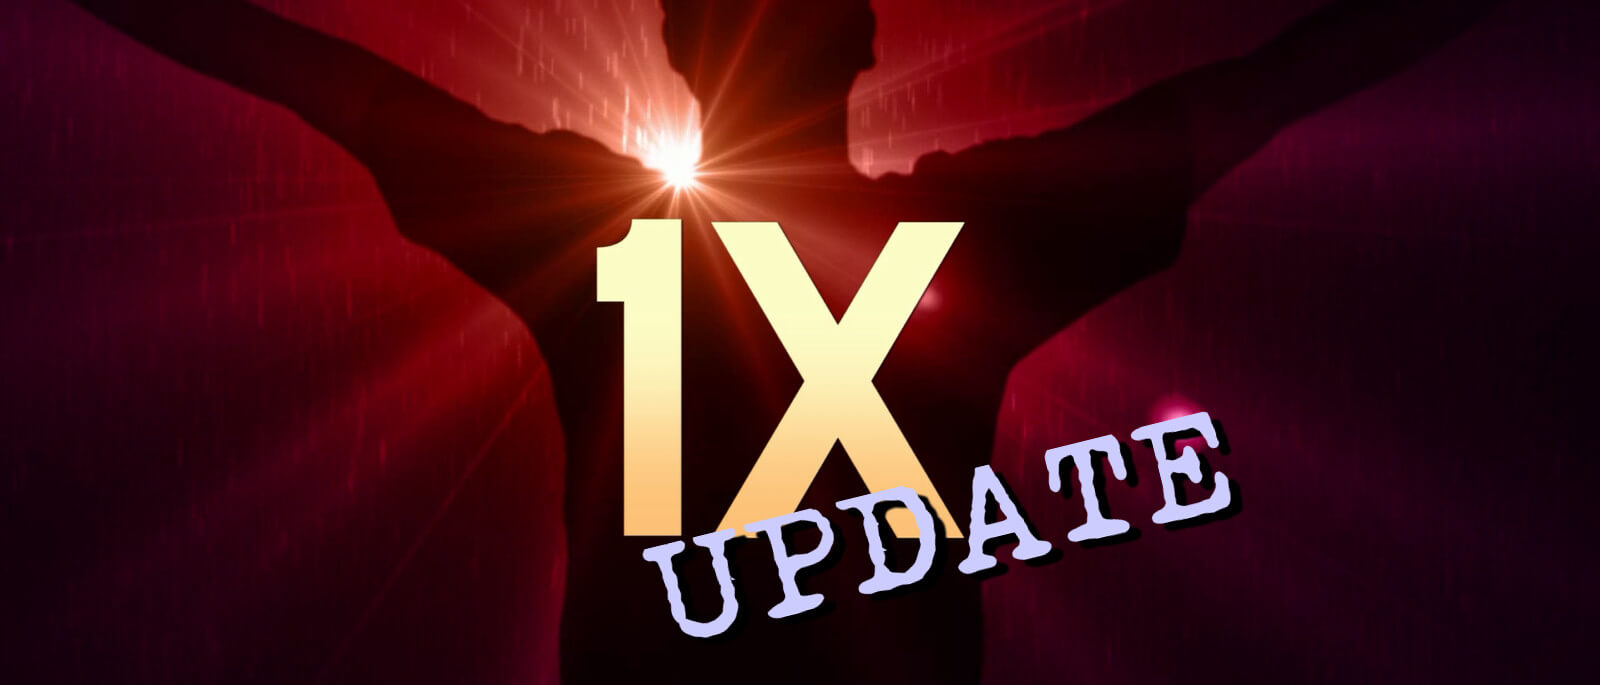 1X Evangelism Update: ISBN Assigned & Layout Being Reviewed